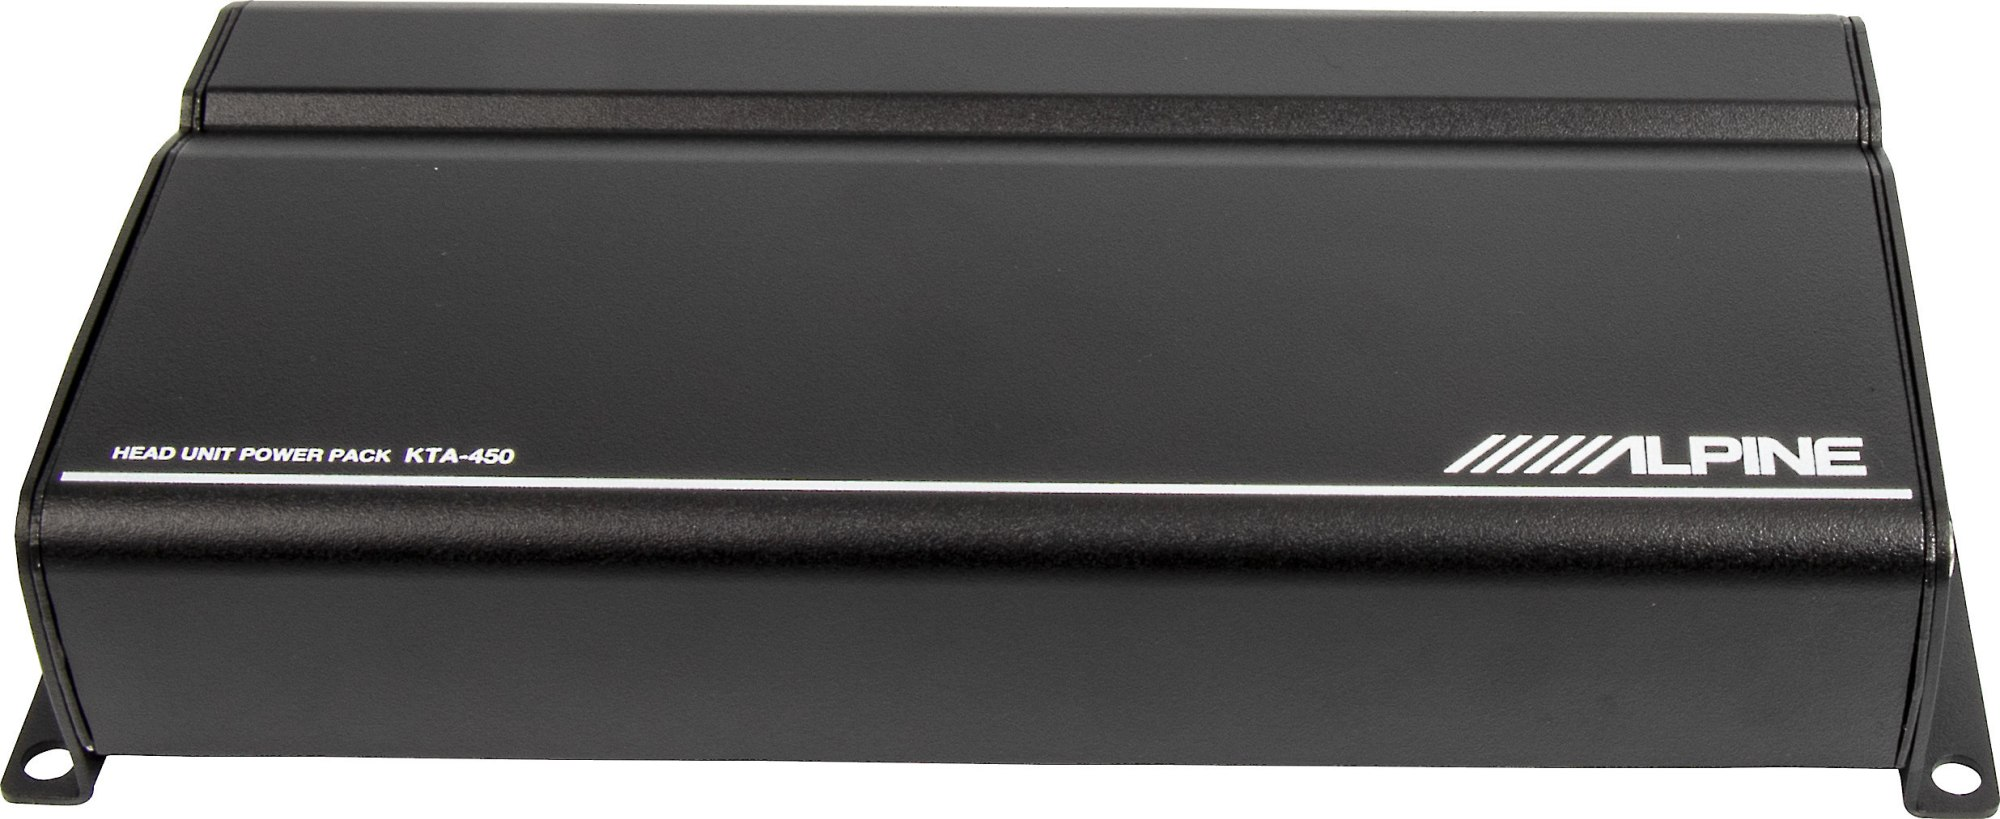 hight resolution of alpine kta 450 power pack compact 4 channel car amplifier 50 watts rms x 4 at crutchfield